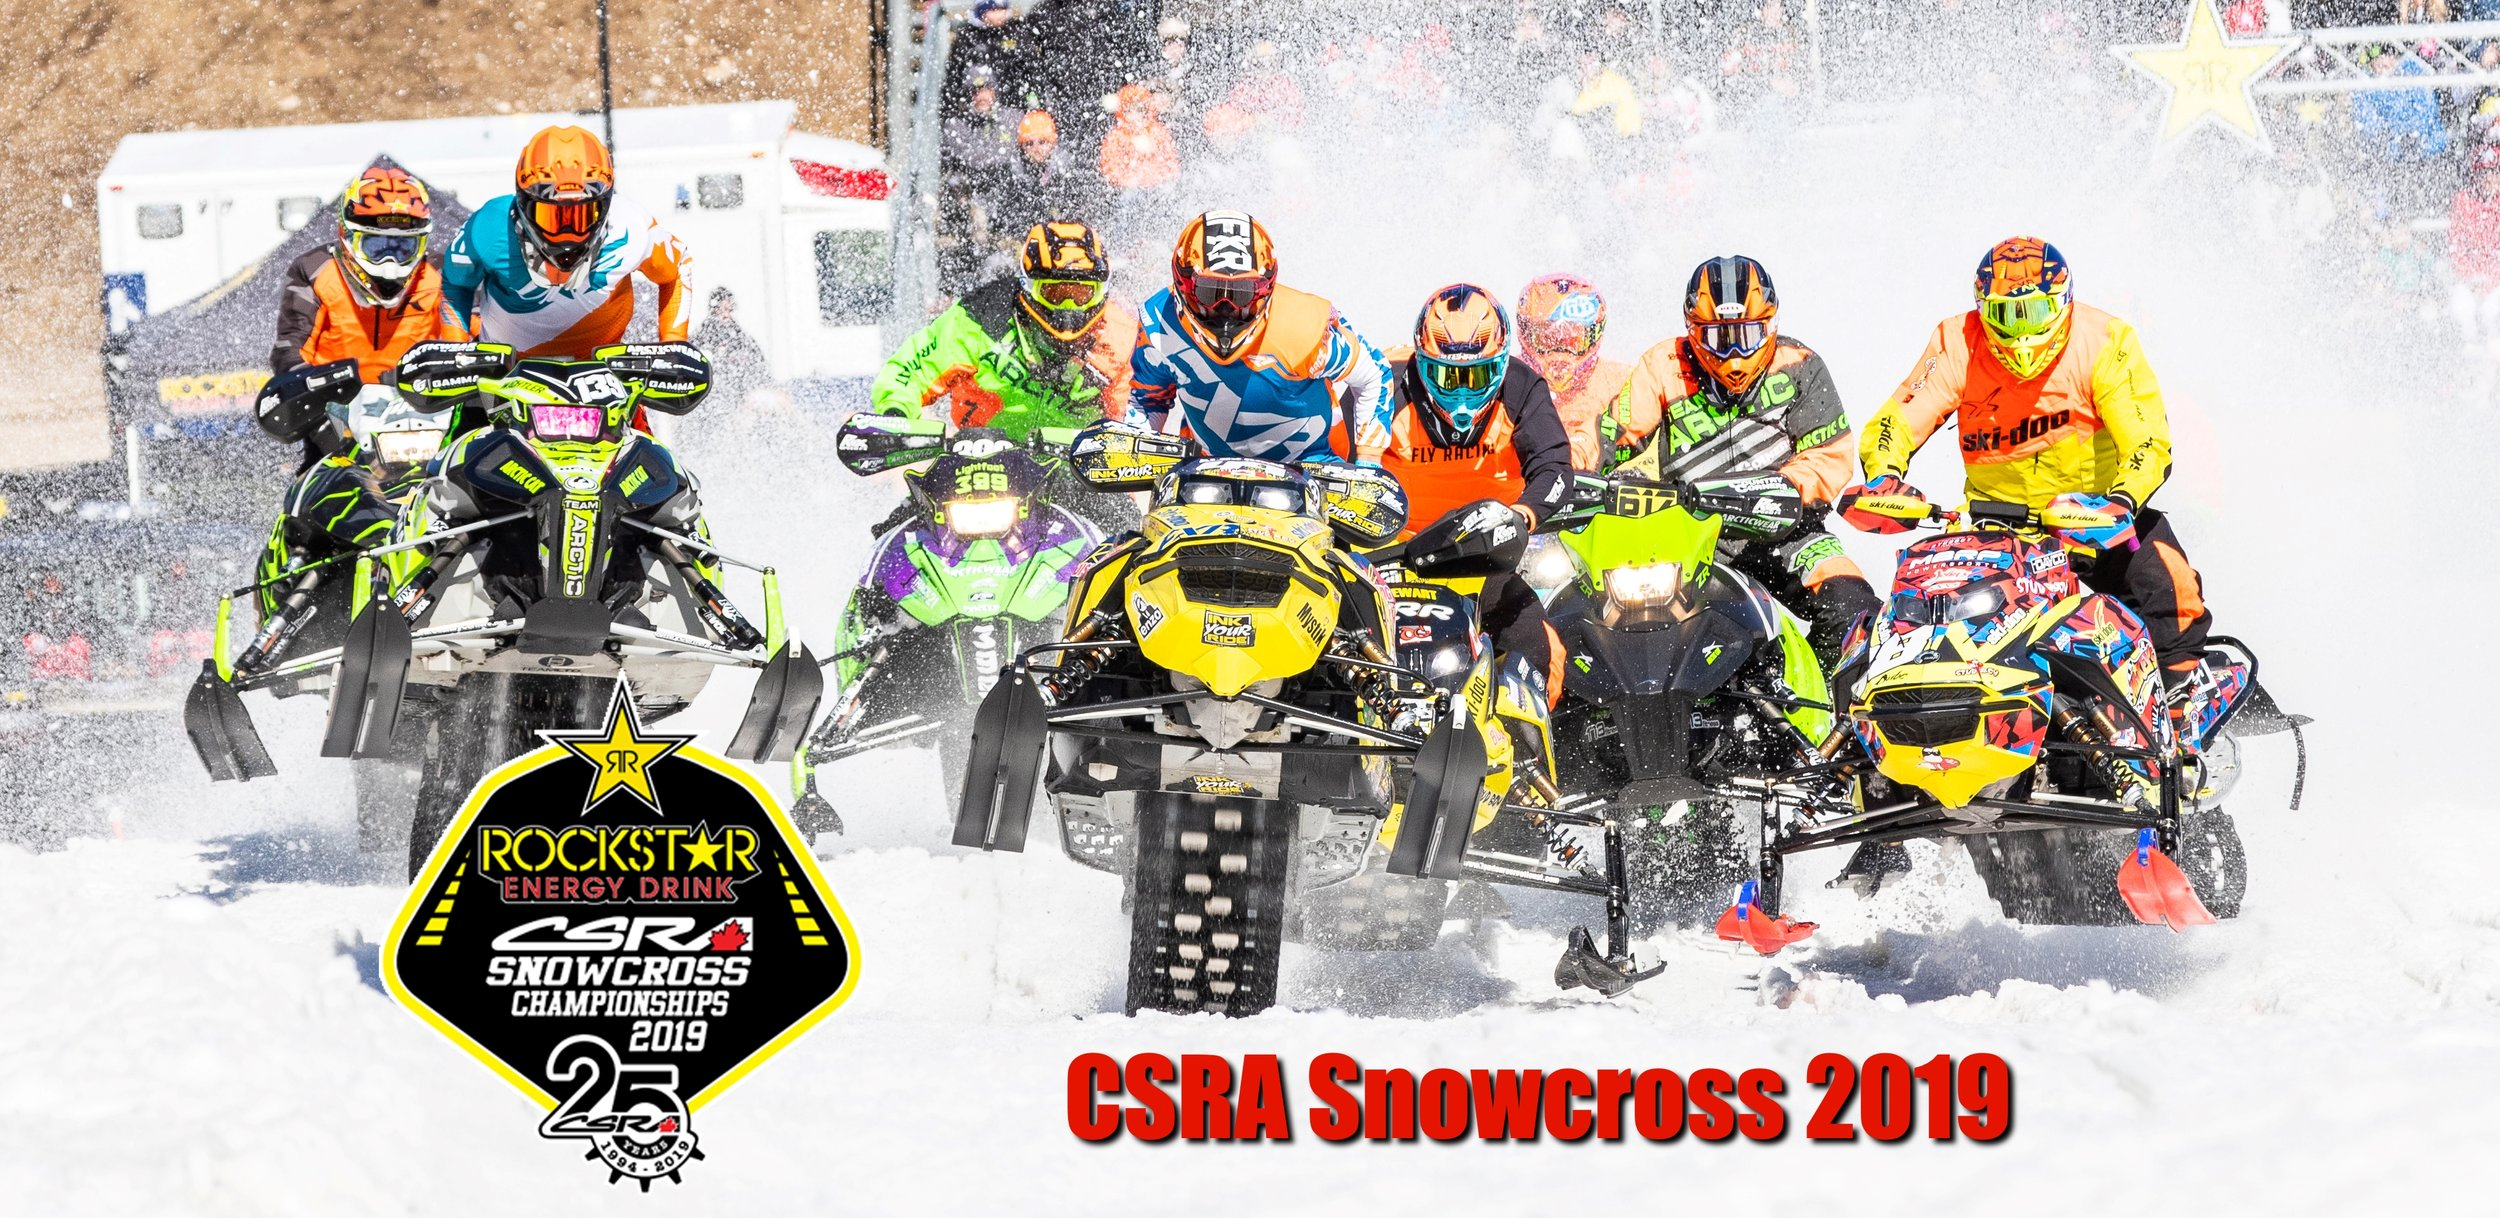 CSRA Snowcross 2019 Season Photos